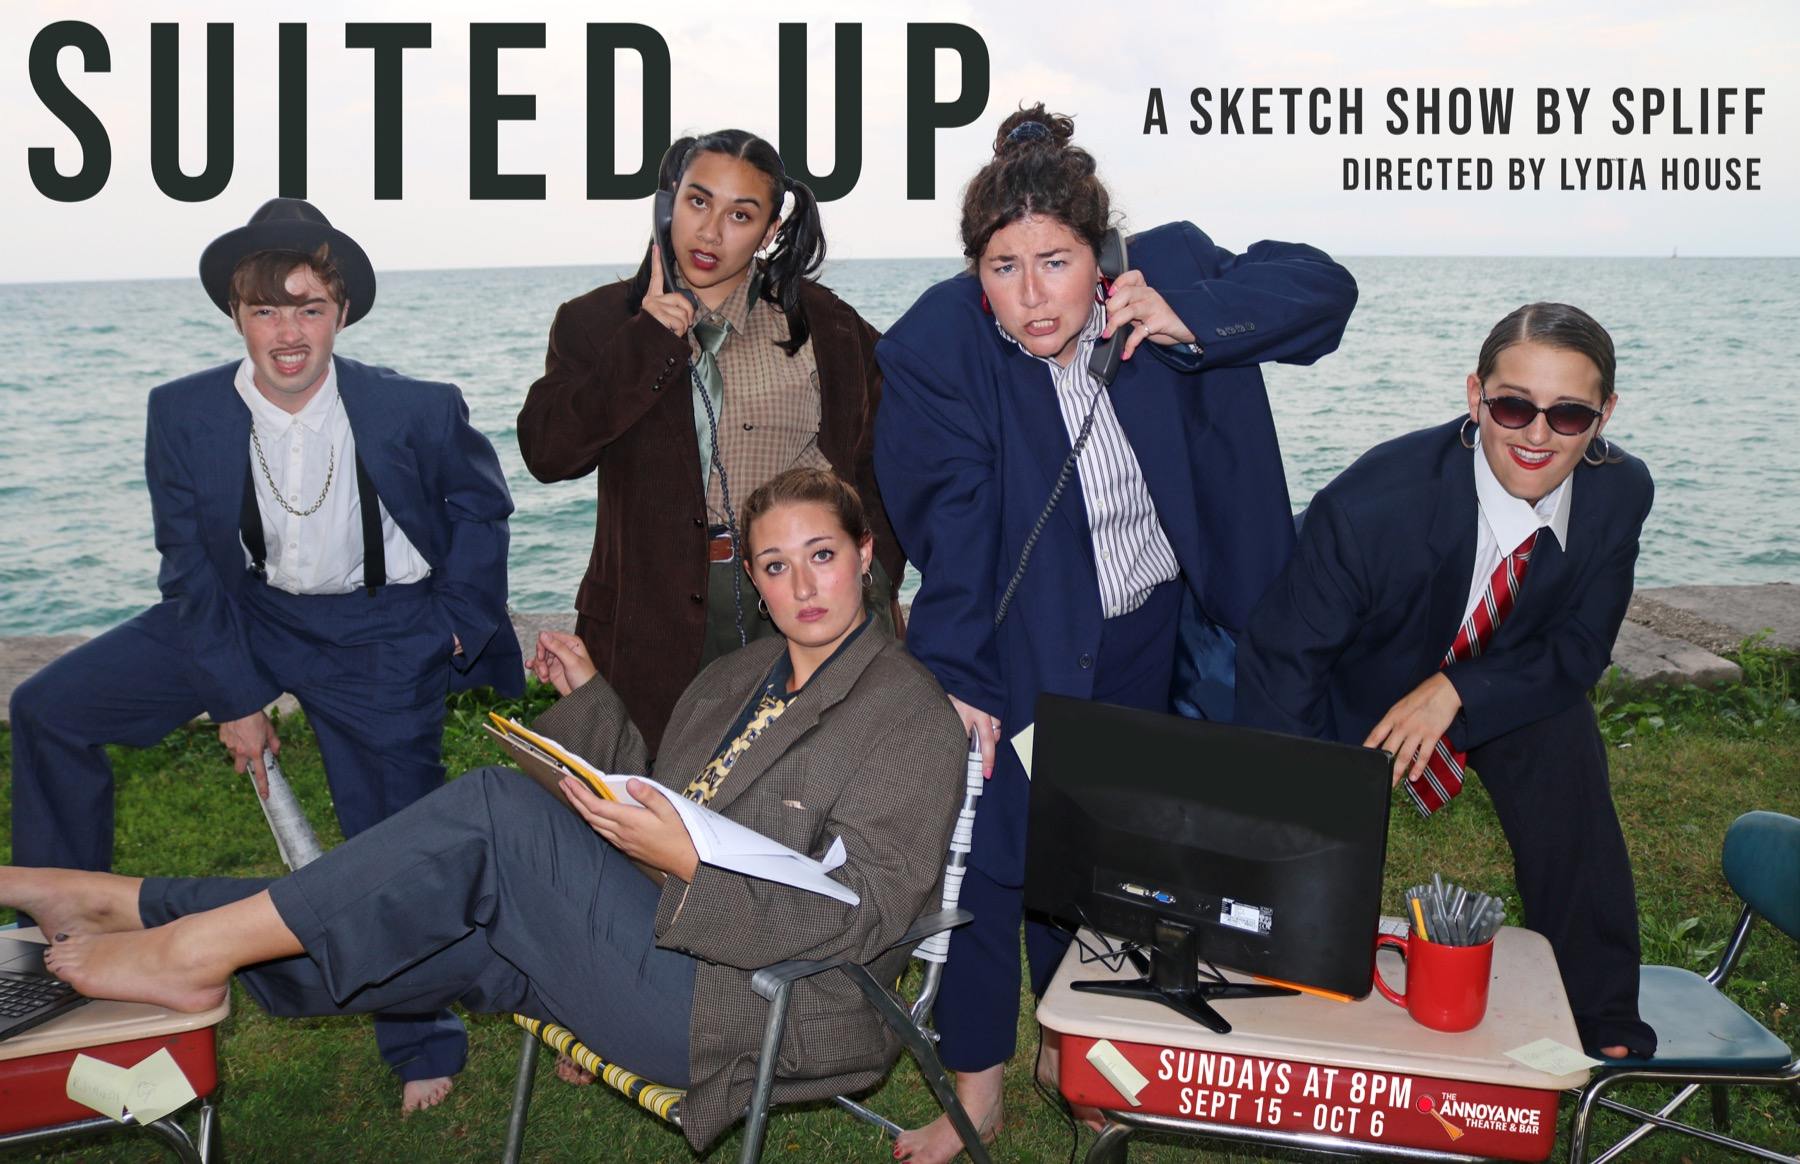 Suited Up- a Sketch Show by SPLIFF